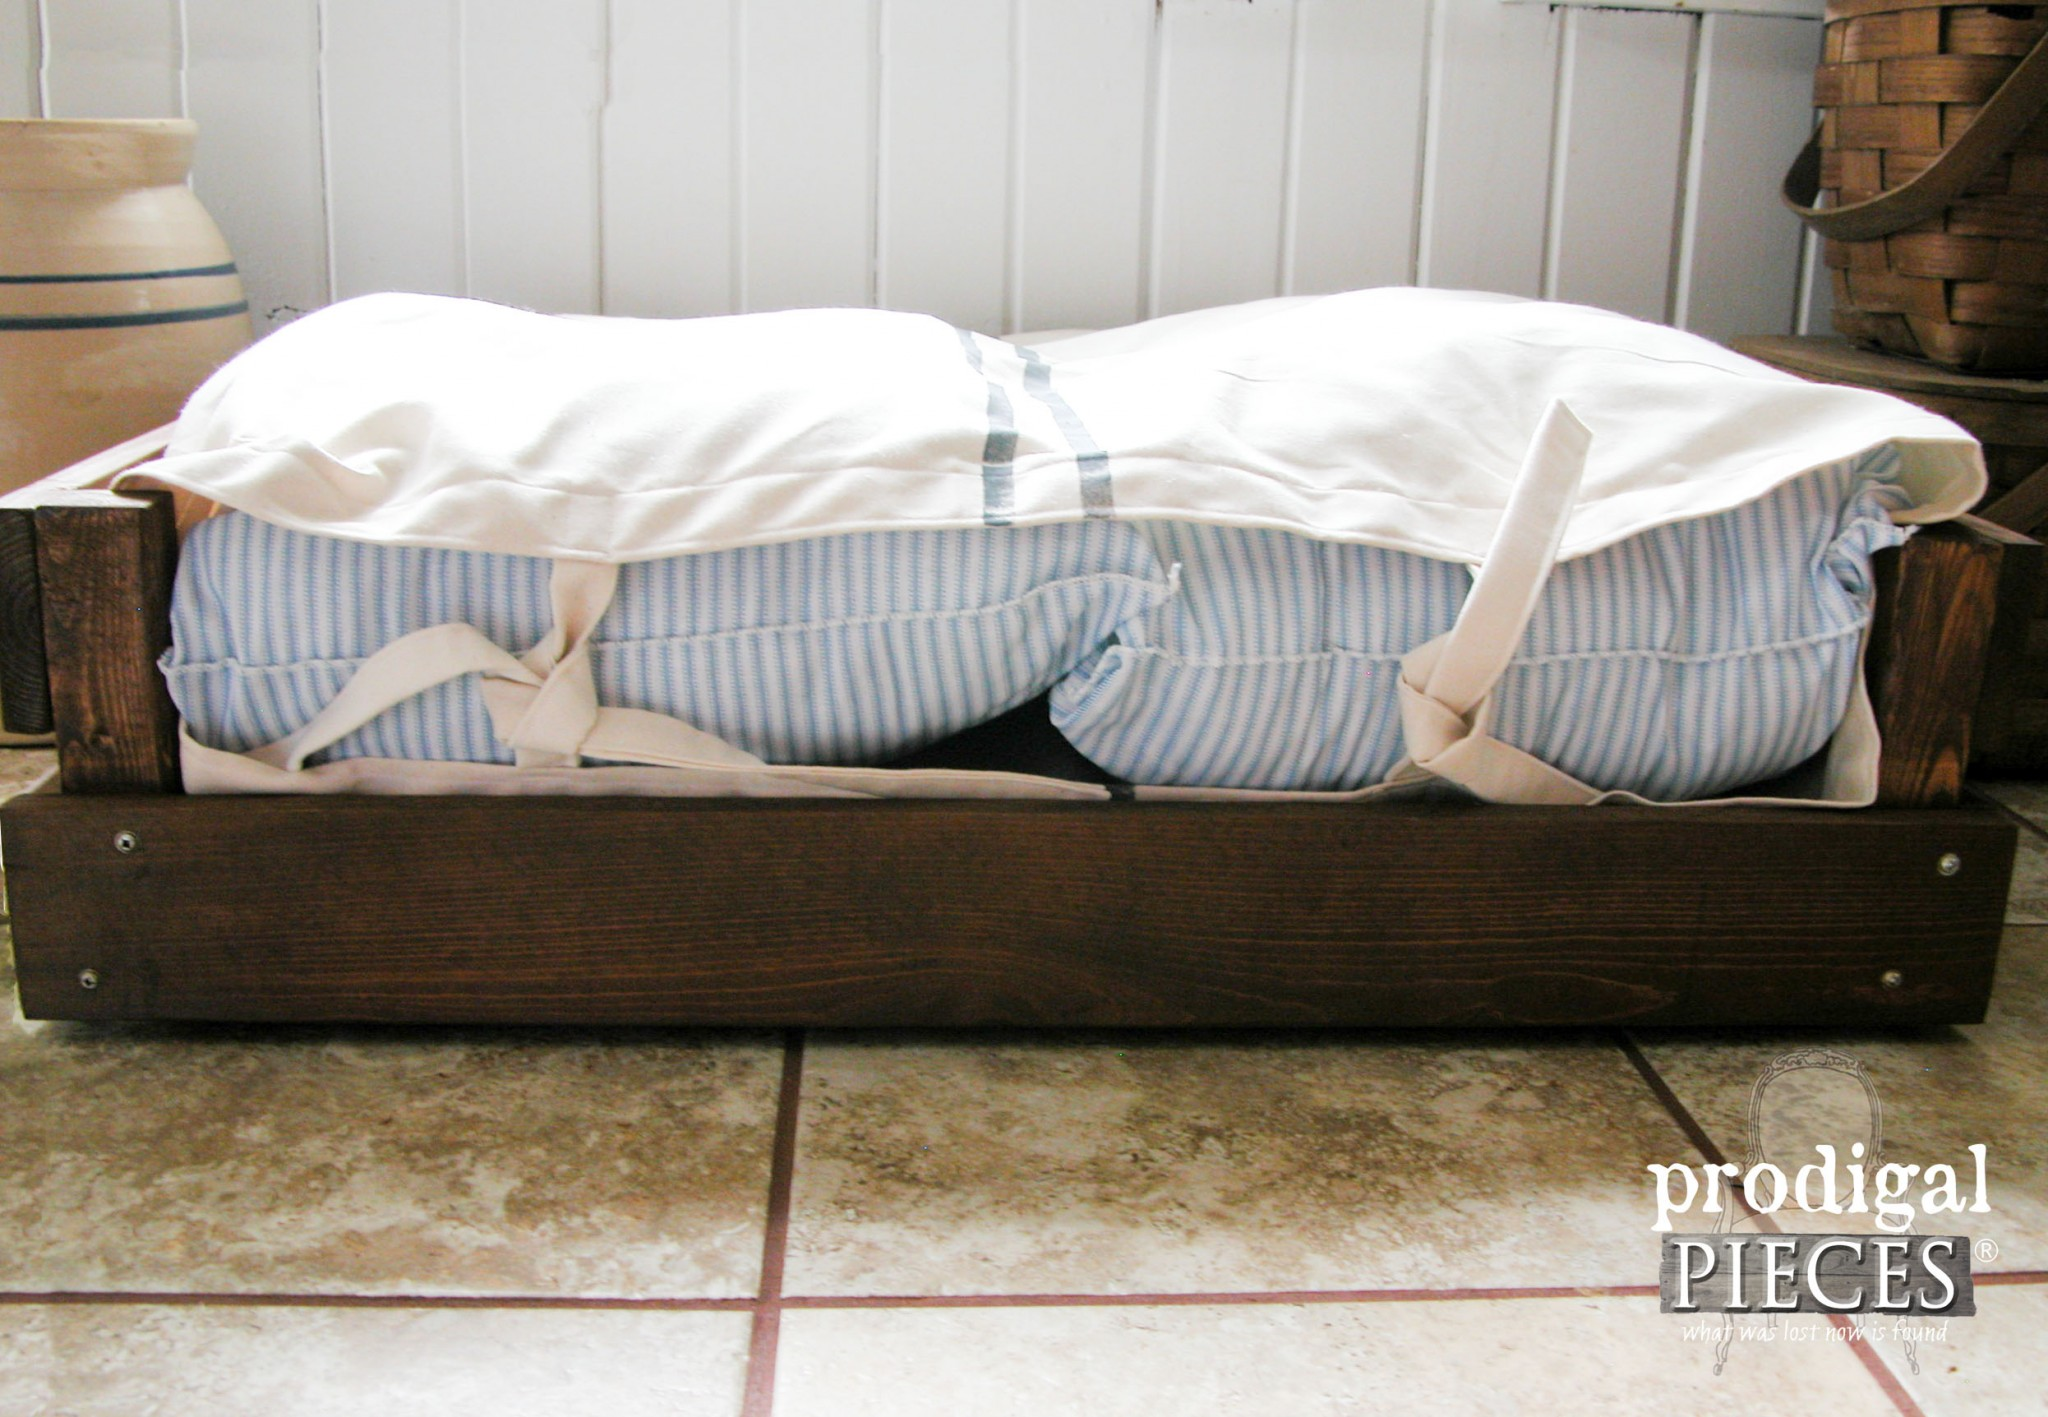 Farmhouse Style Ticking and Grain Sack Pet Bed with Tutorial by Prodigal Pieces | www.prodigalpieces.com